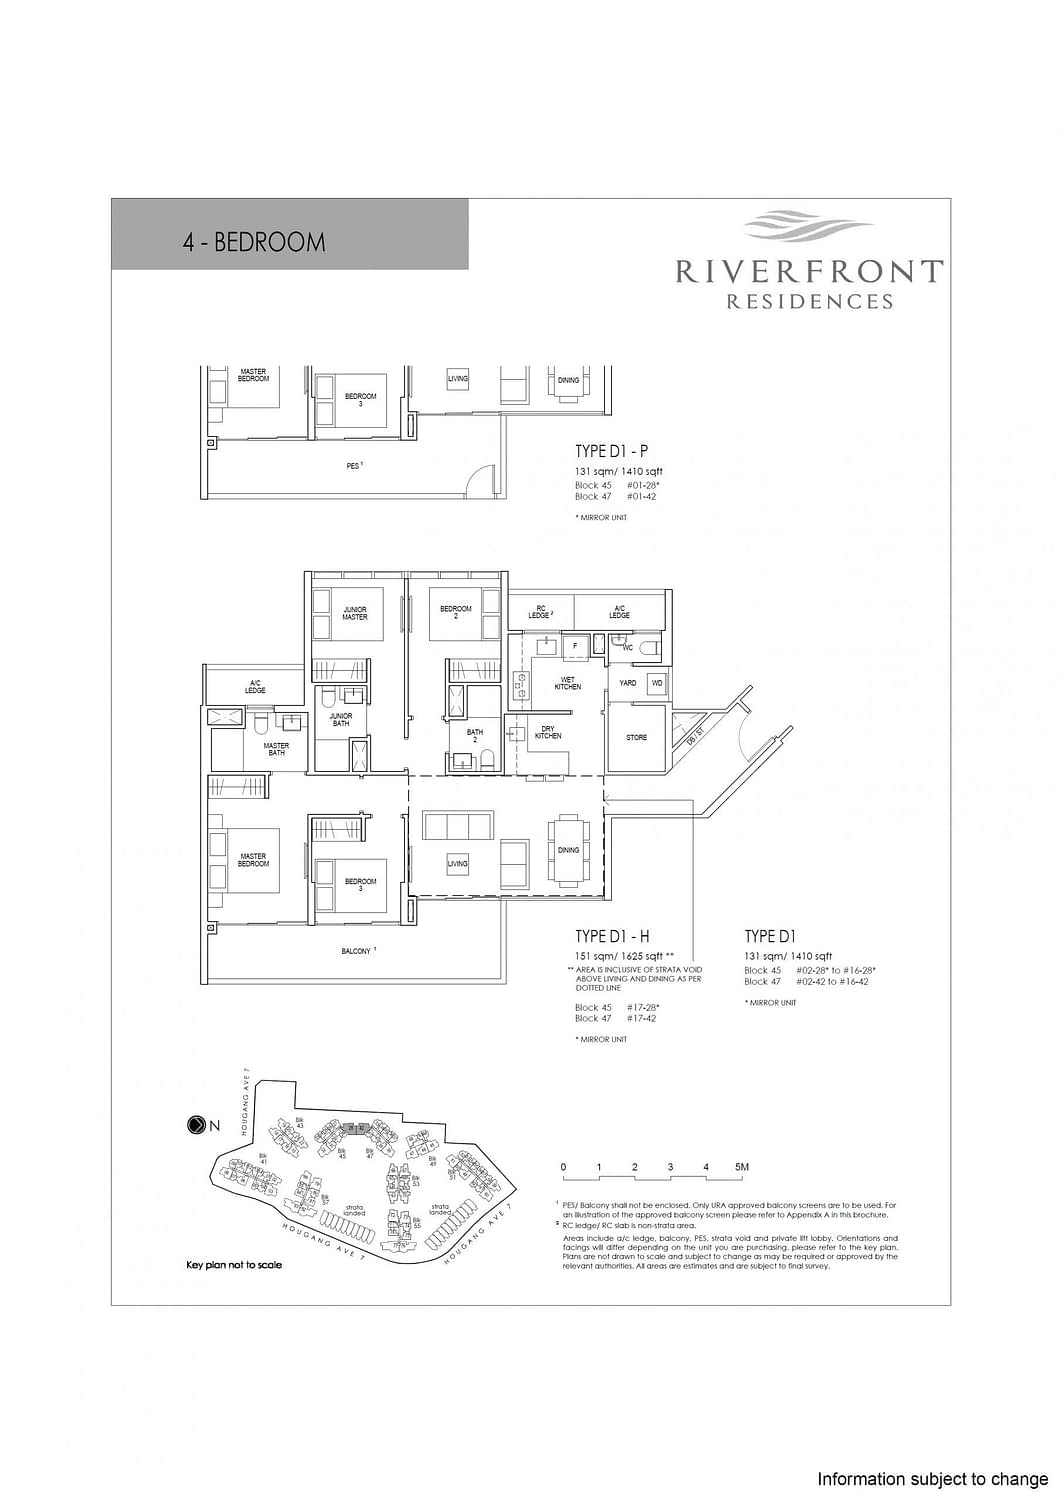 Riverfront Residences Riverfront Residences Floorplan D1 scaled